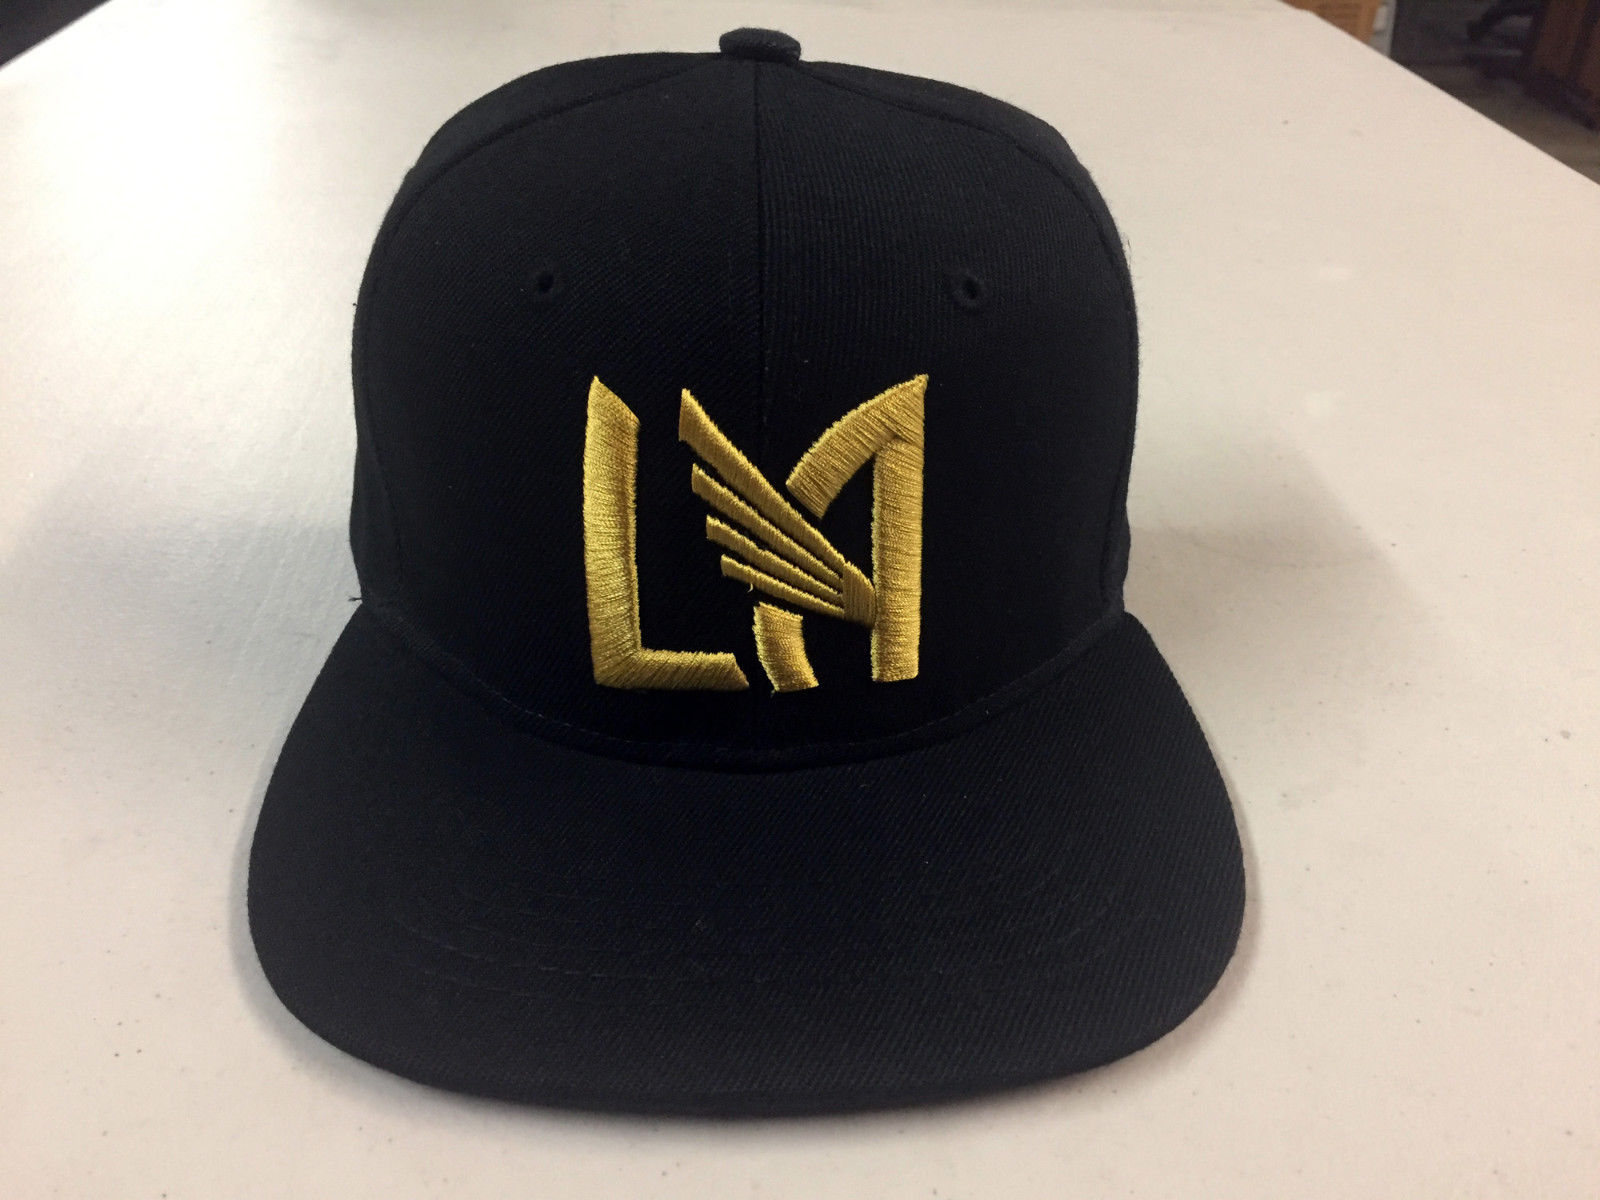 online store 92a0f 82551 ... coupon code for los angeles fc snap back cap hat lafc embroidered adjustable  football club basebal